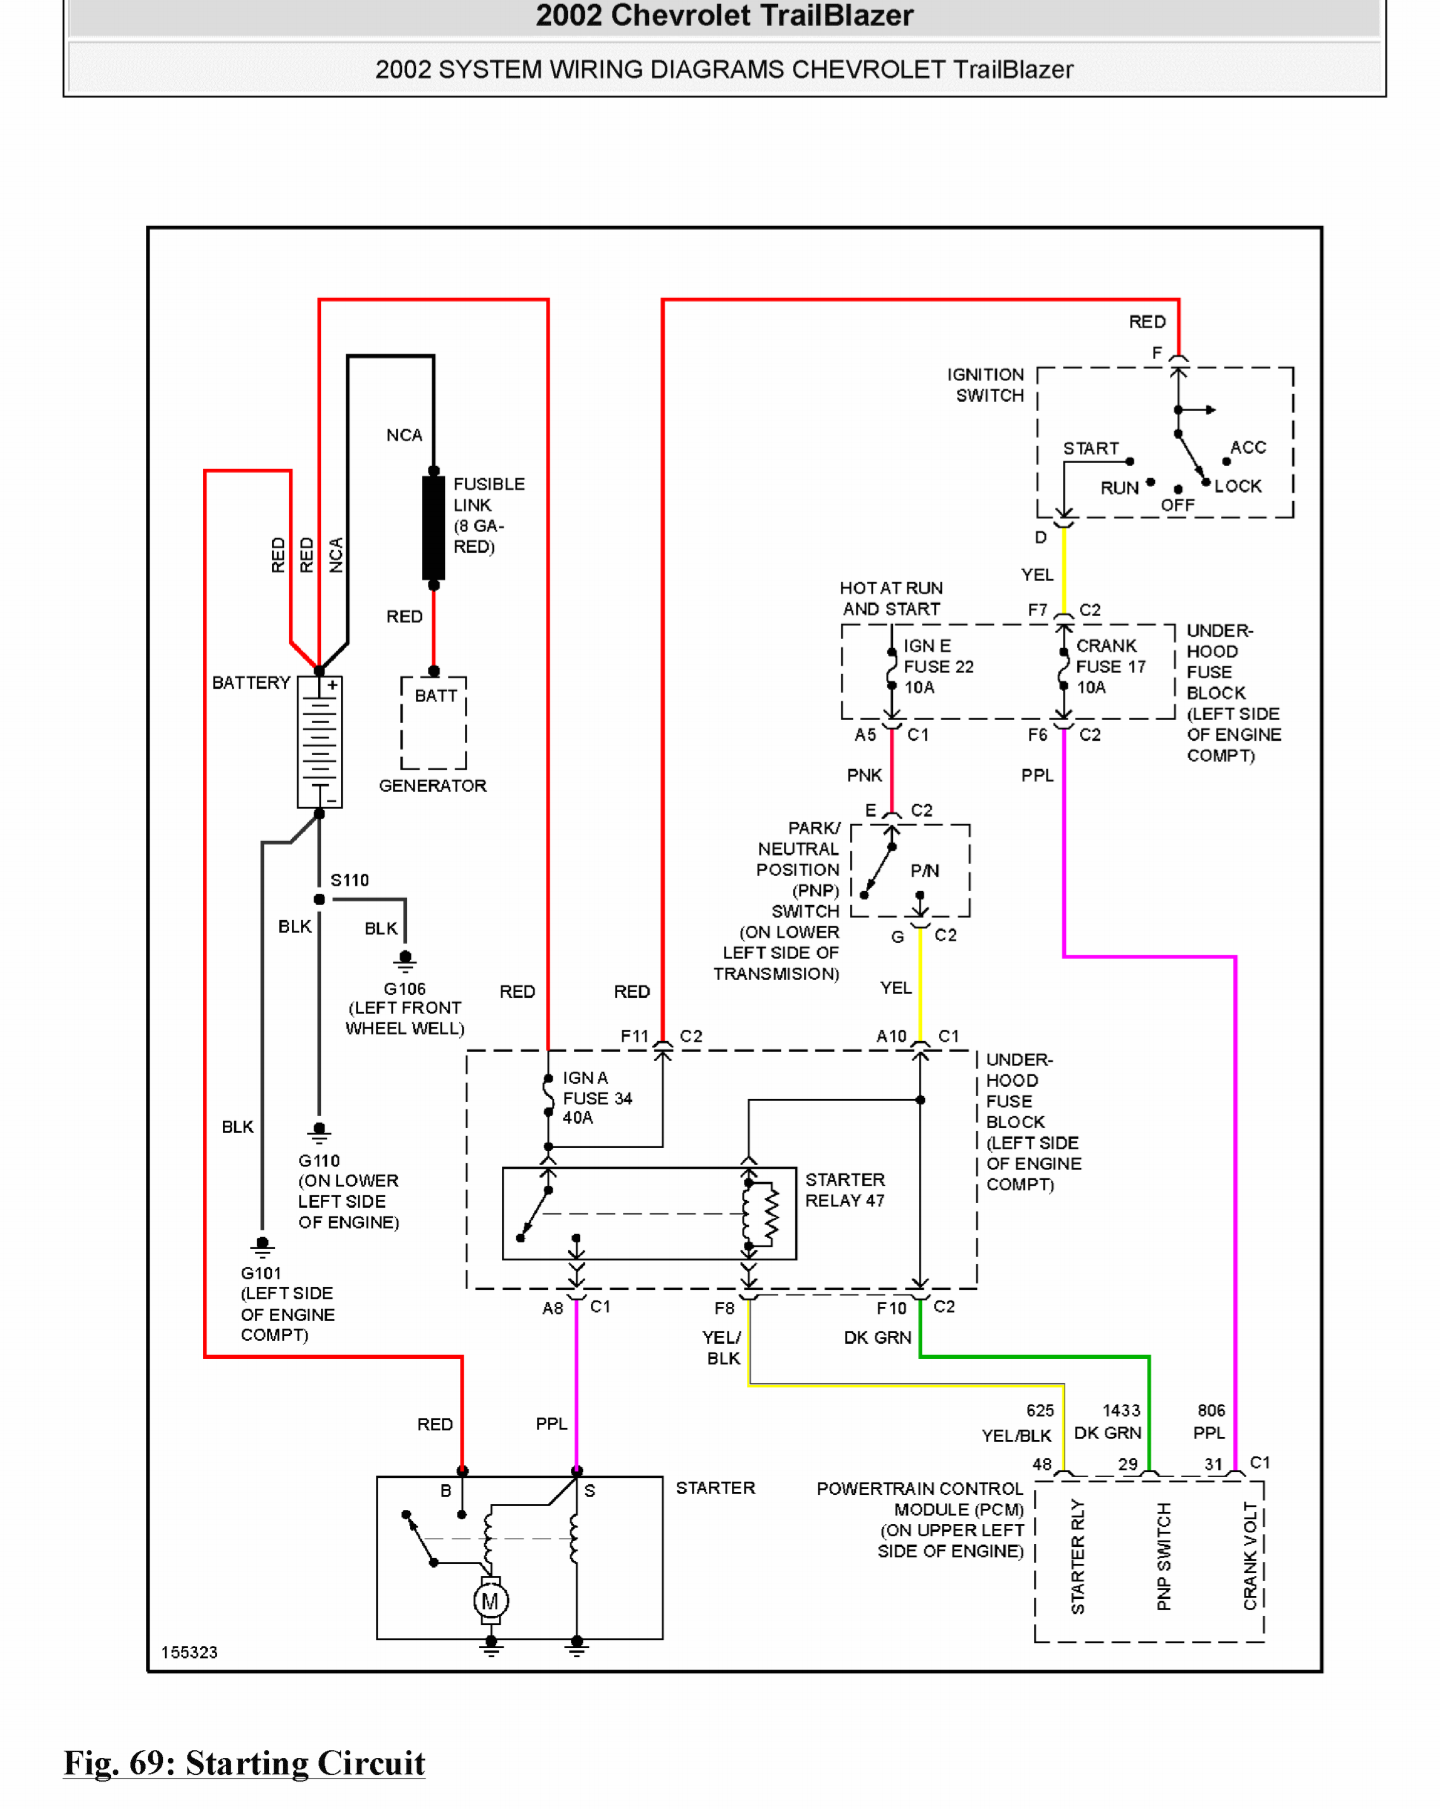 Wiring Diagrams Chevy Trailblazer Trailblazer Ss And Gmc Envoy Forum